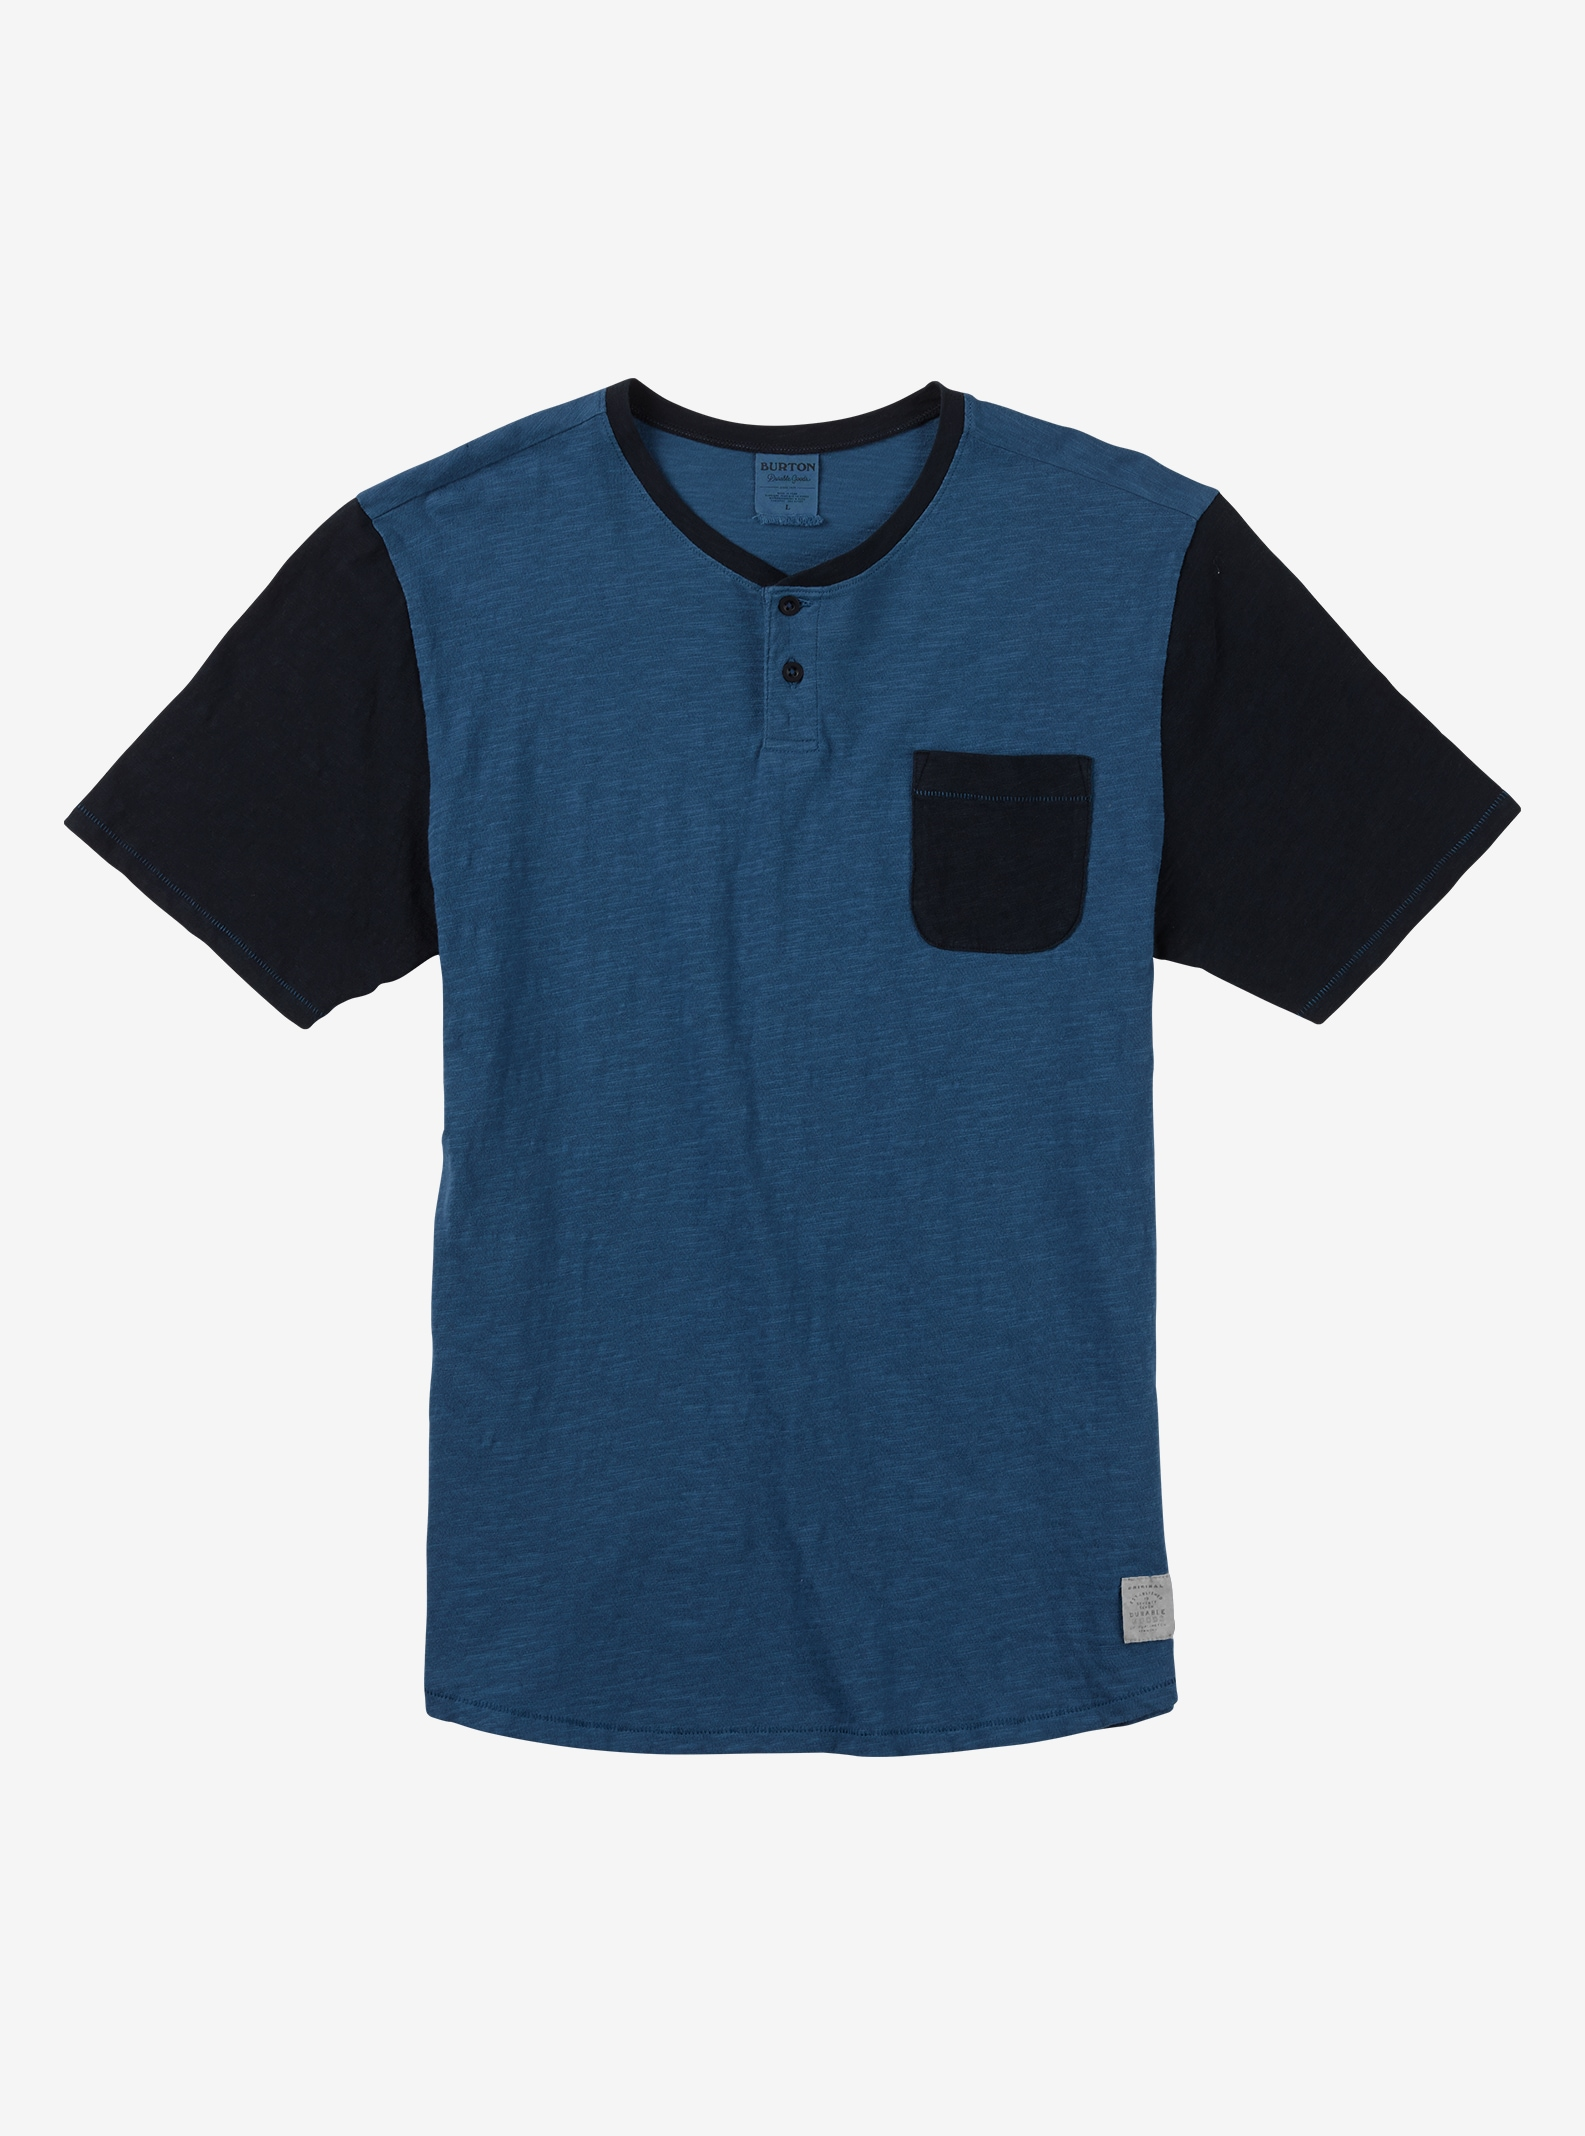 Burton Dwight Henley Tee shown in Indigo